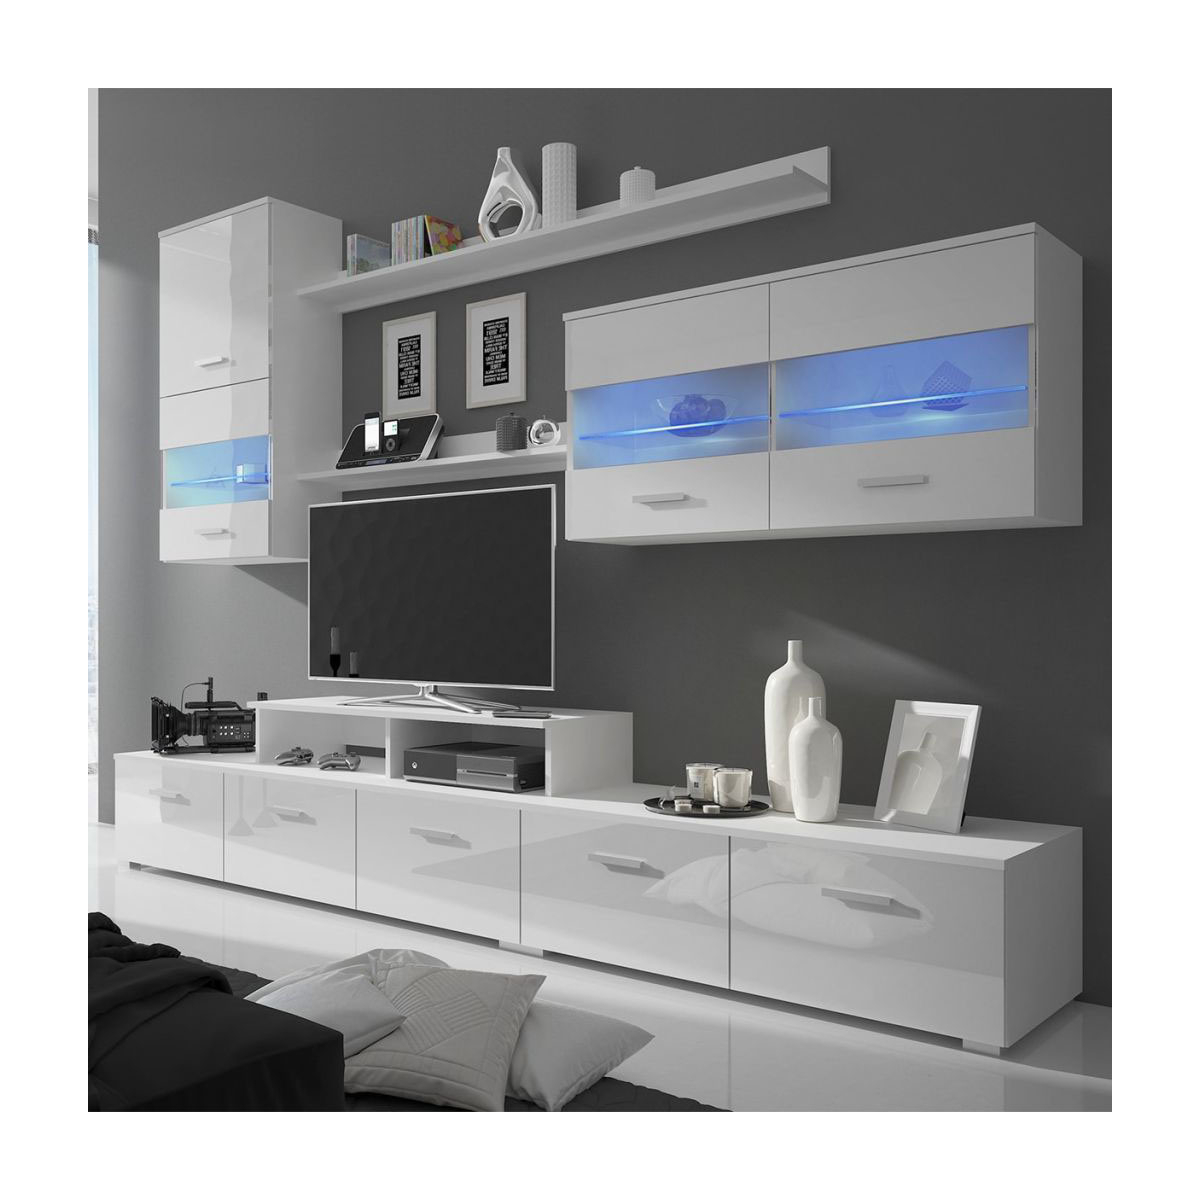 57'' Led Tv Stands Cabinet With Regard To Well Known China Latest Design Led Glossy Tv Stand Wall Hall Cabinet (View 8 of 10)